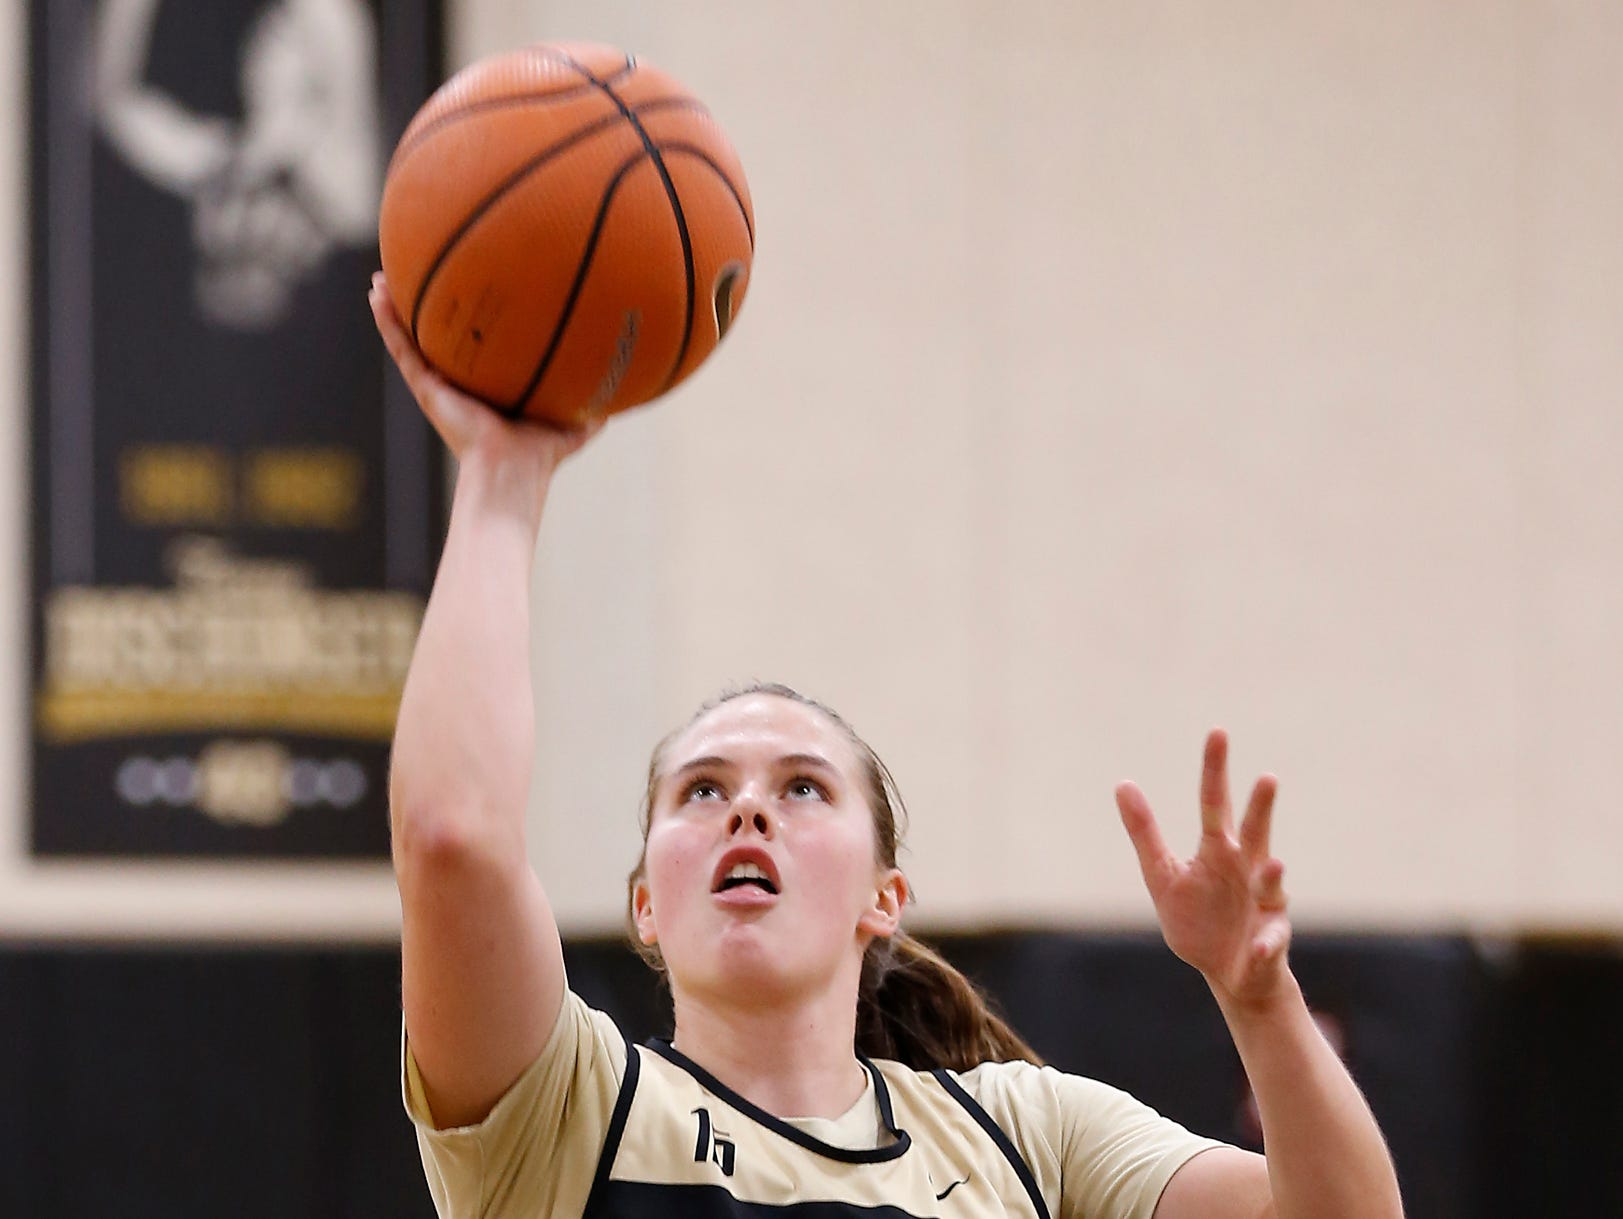 Léony Bourdreau with a layup during practice for Purdue women's basketball Wednesday, September 26, 2018, at Cardinal Court in Mackey Arena.